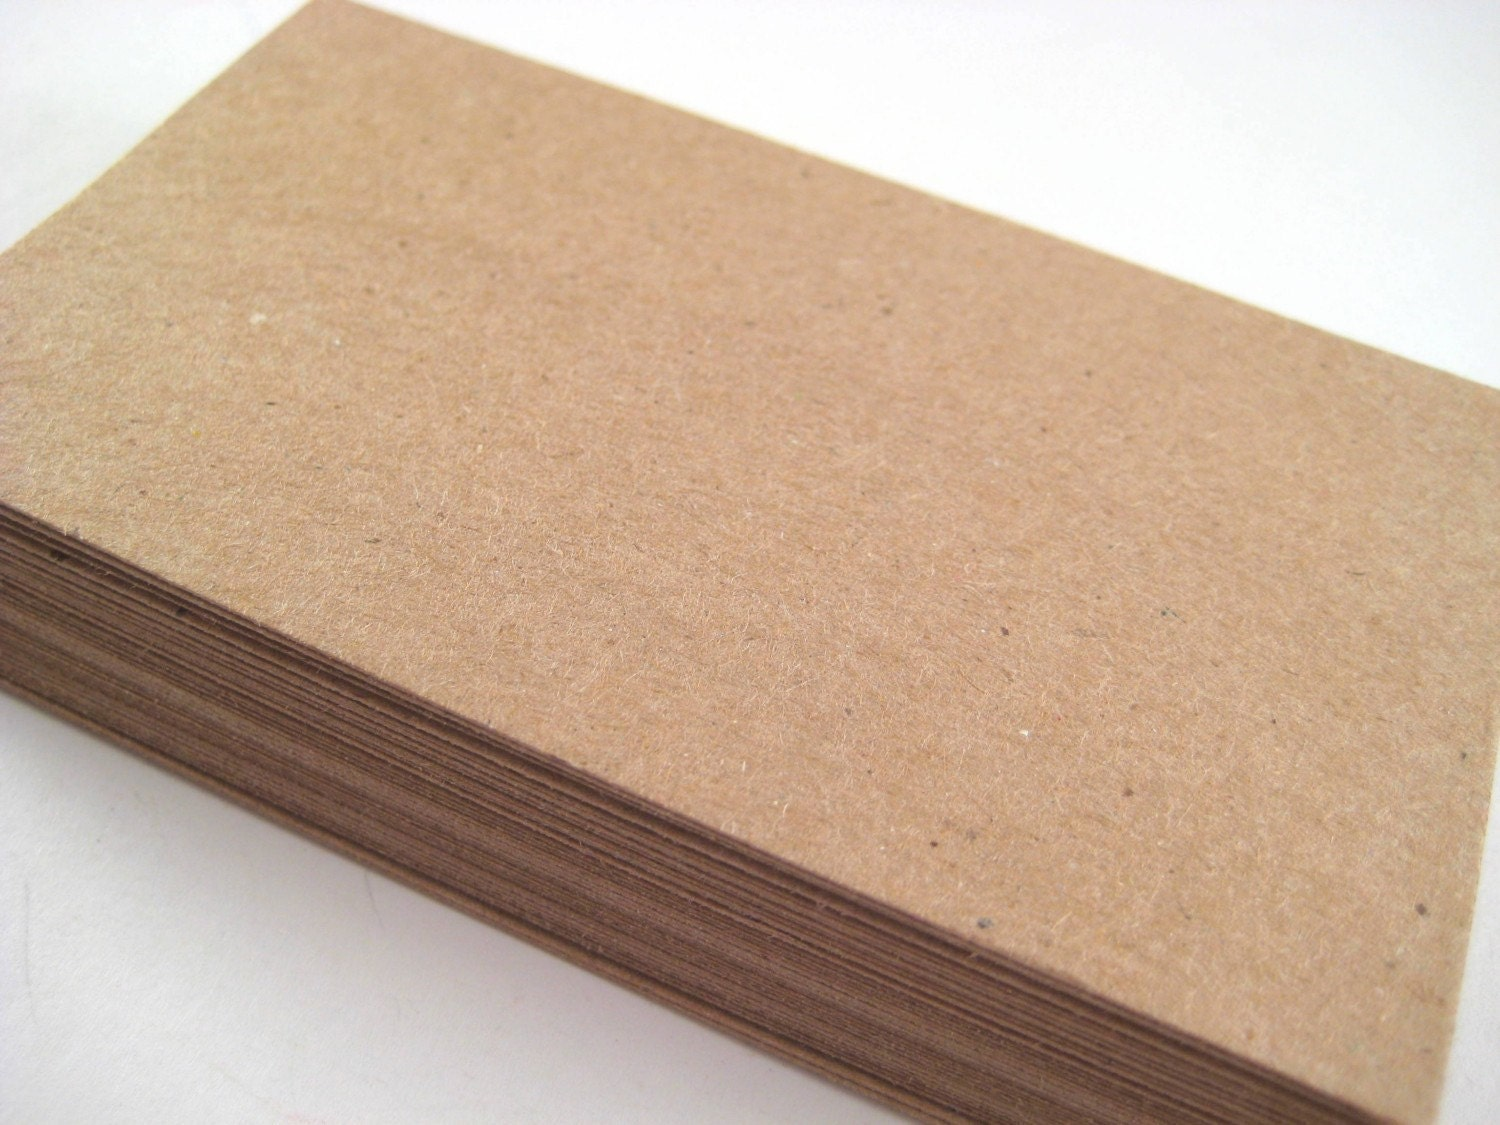 50 Kraft Paper Blank Business Cards DIY by owlbot on Etsy